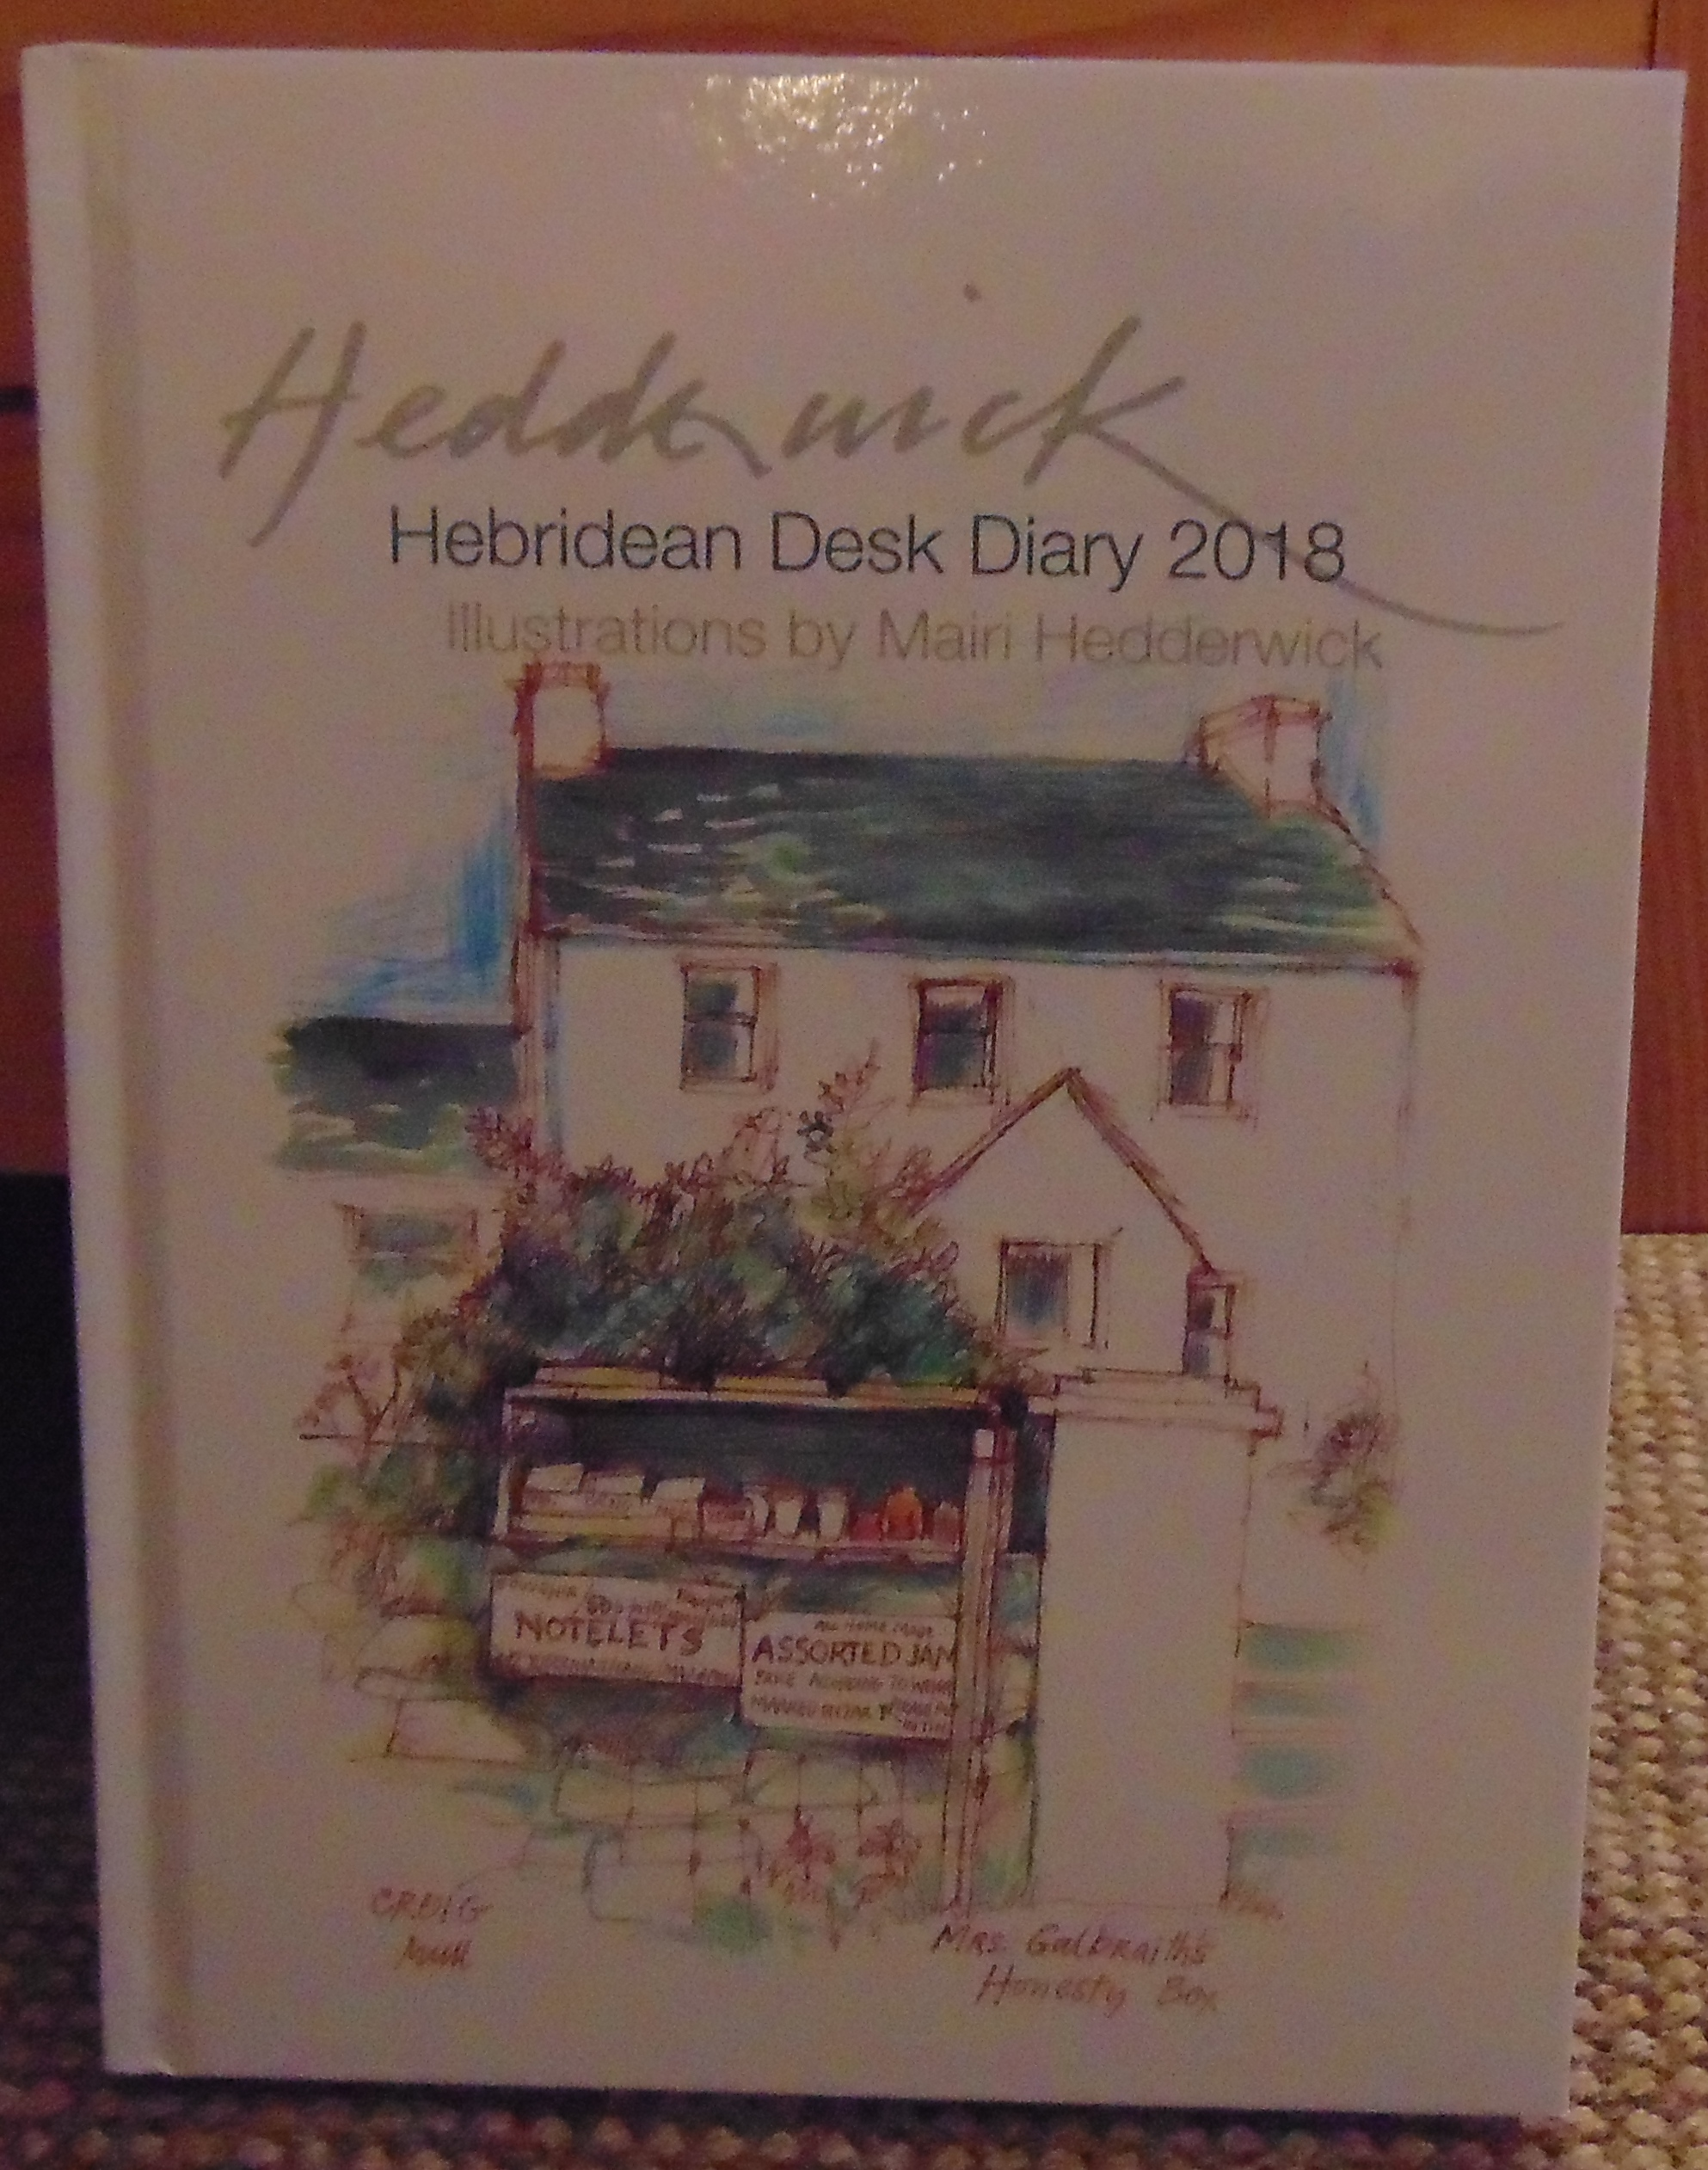 Hebridean Desk Diary 2018